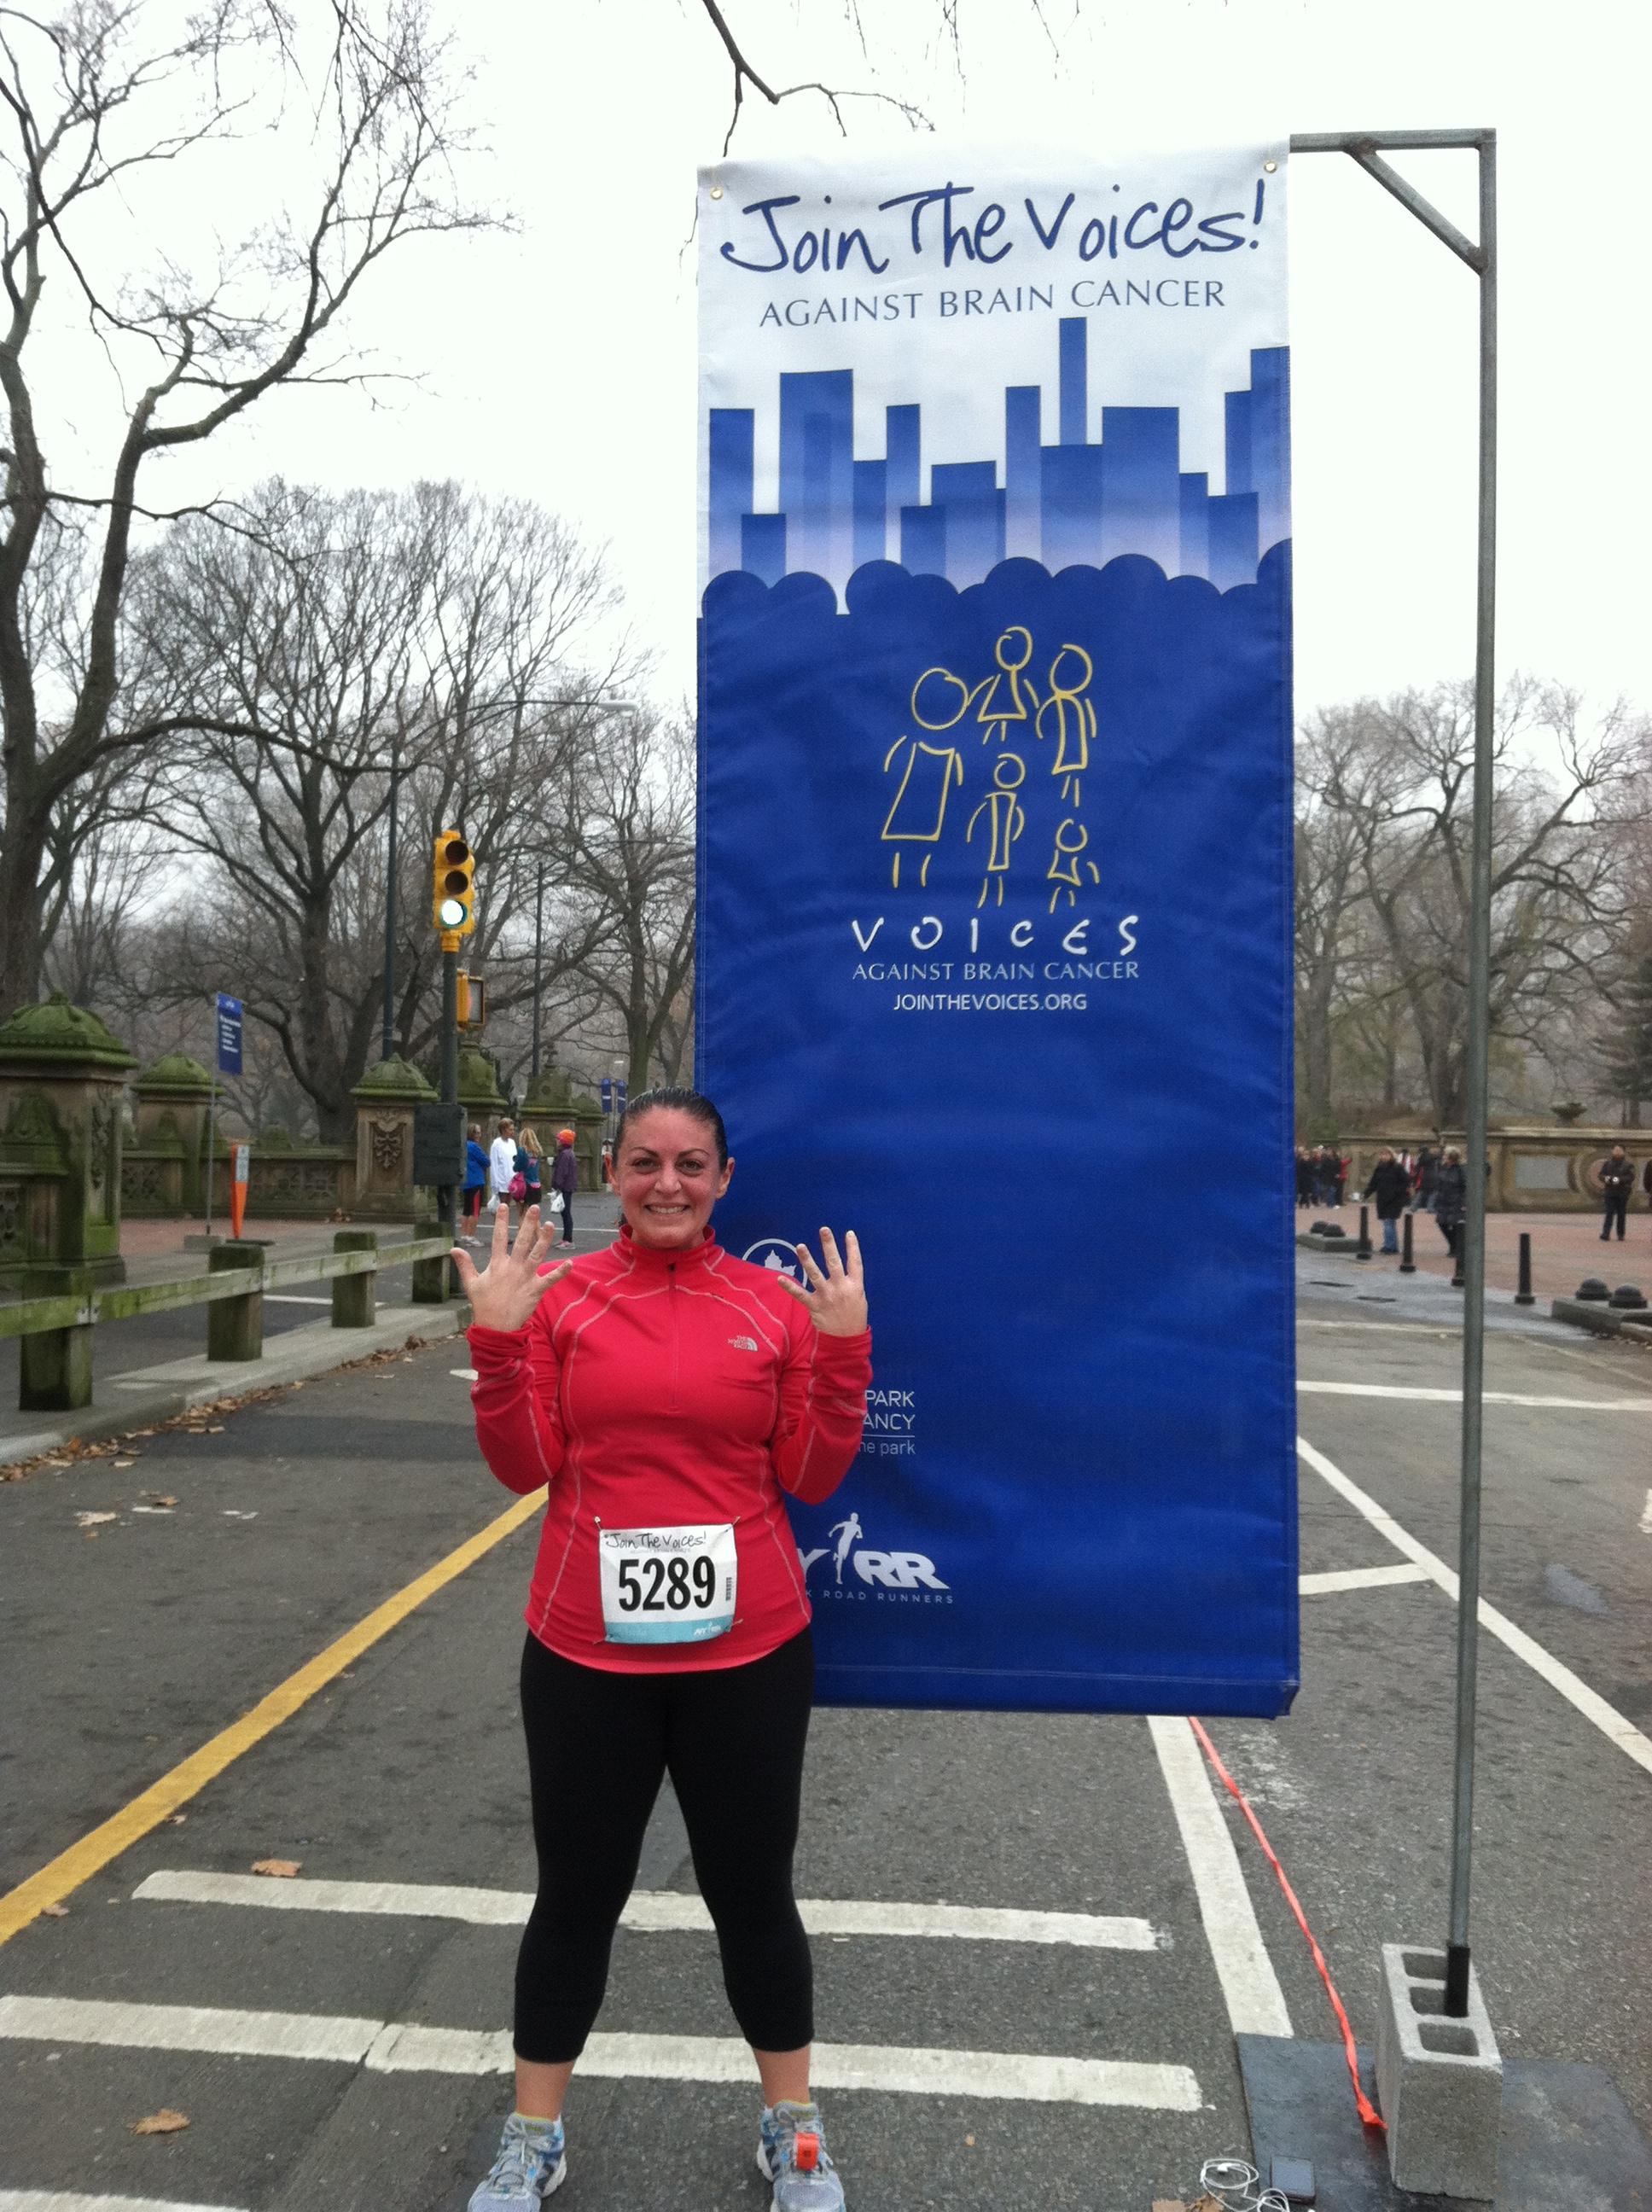 Race #9 for Beth - She's in for NYCM 2013!